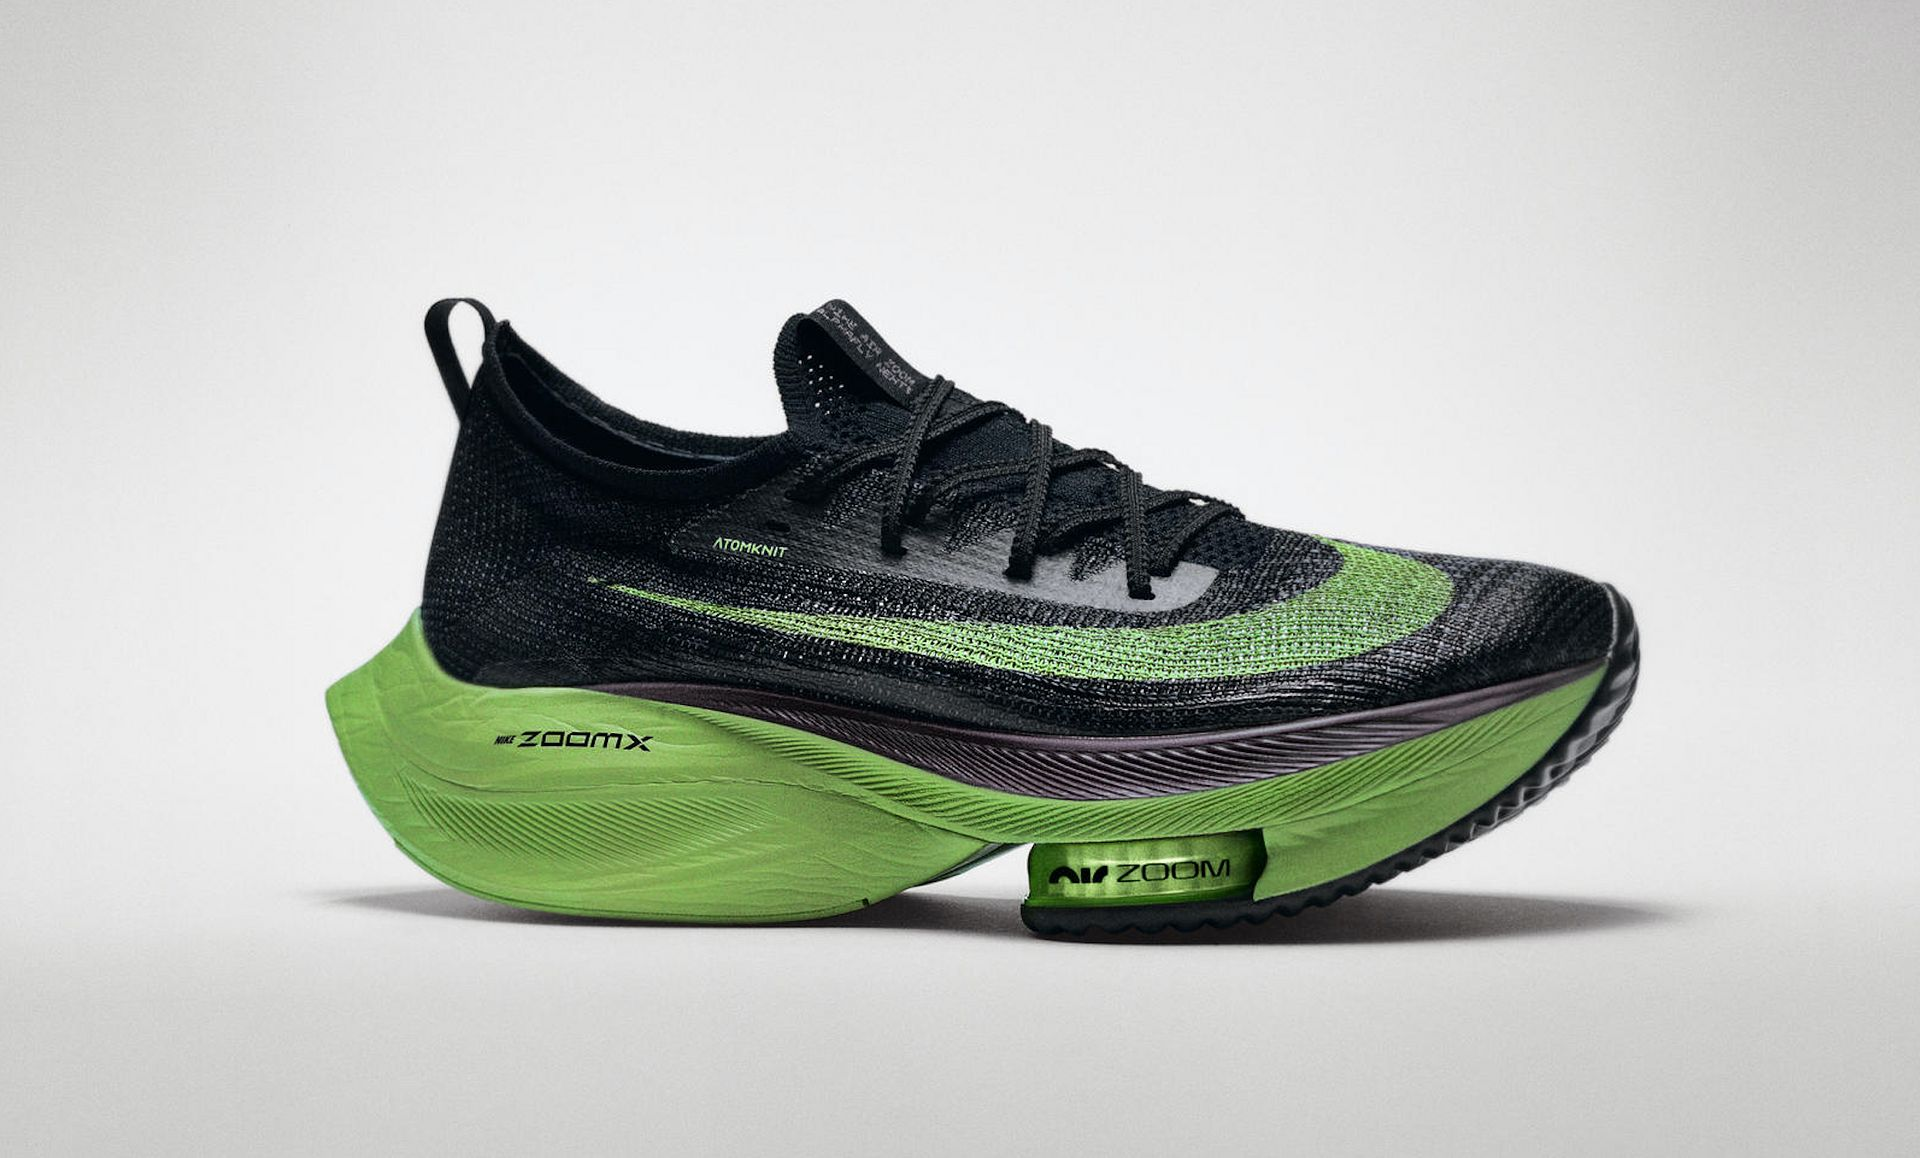 Running Shoes With Carbon-Fiber Plates